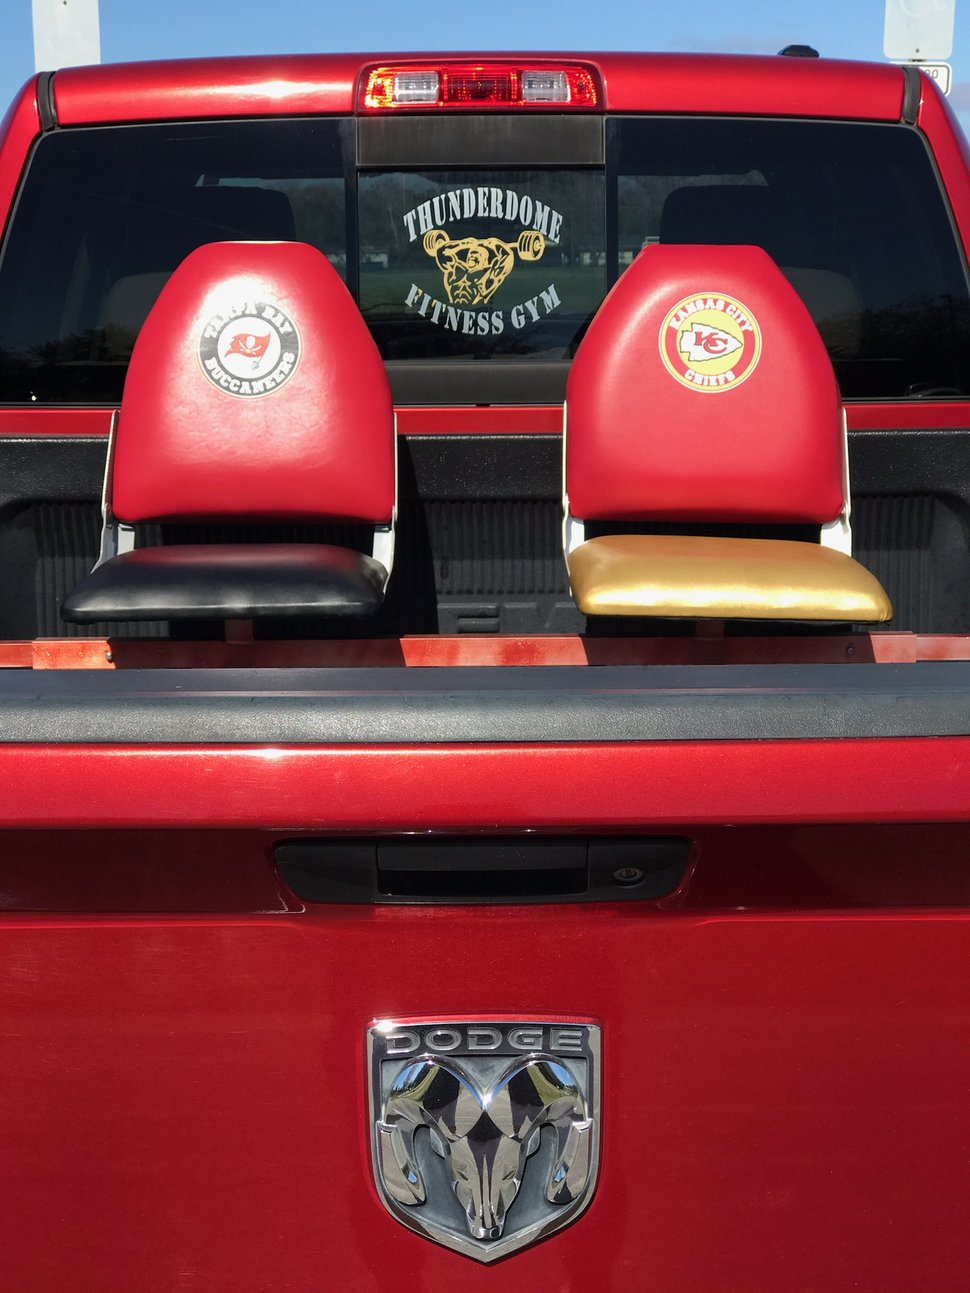 Truck bed seats